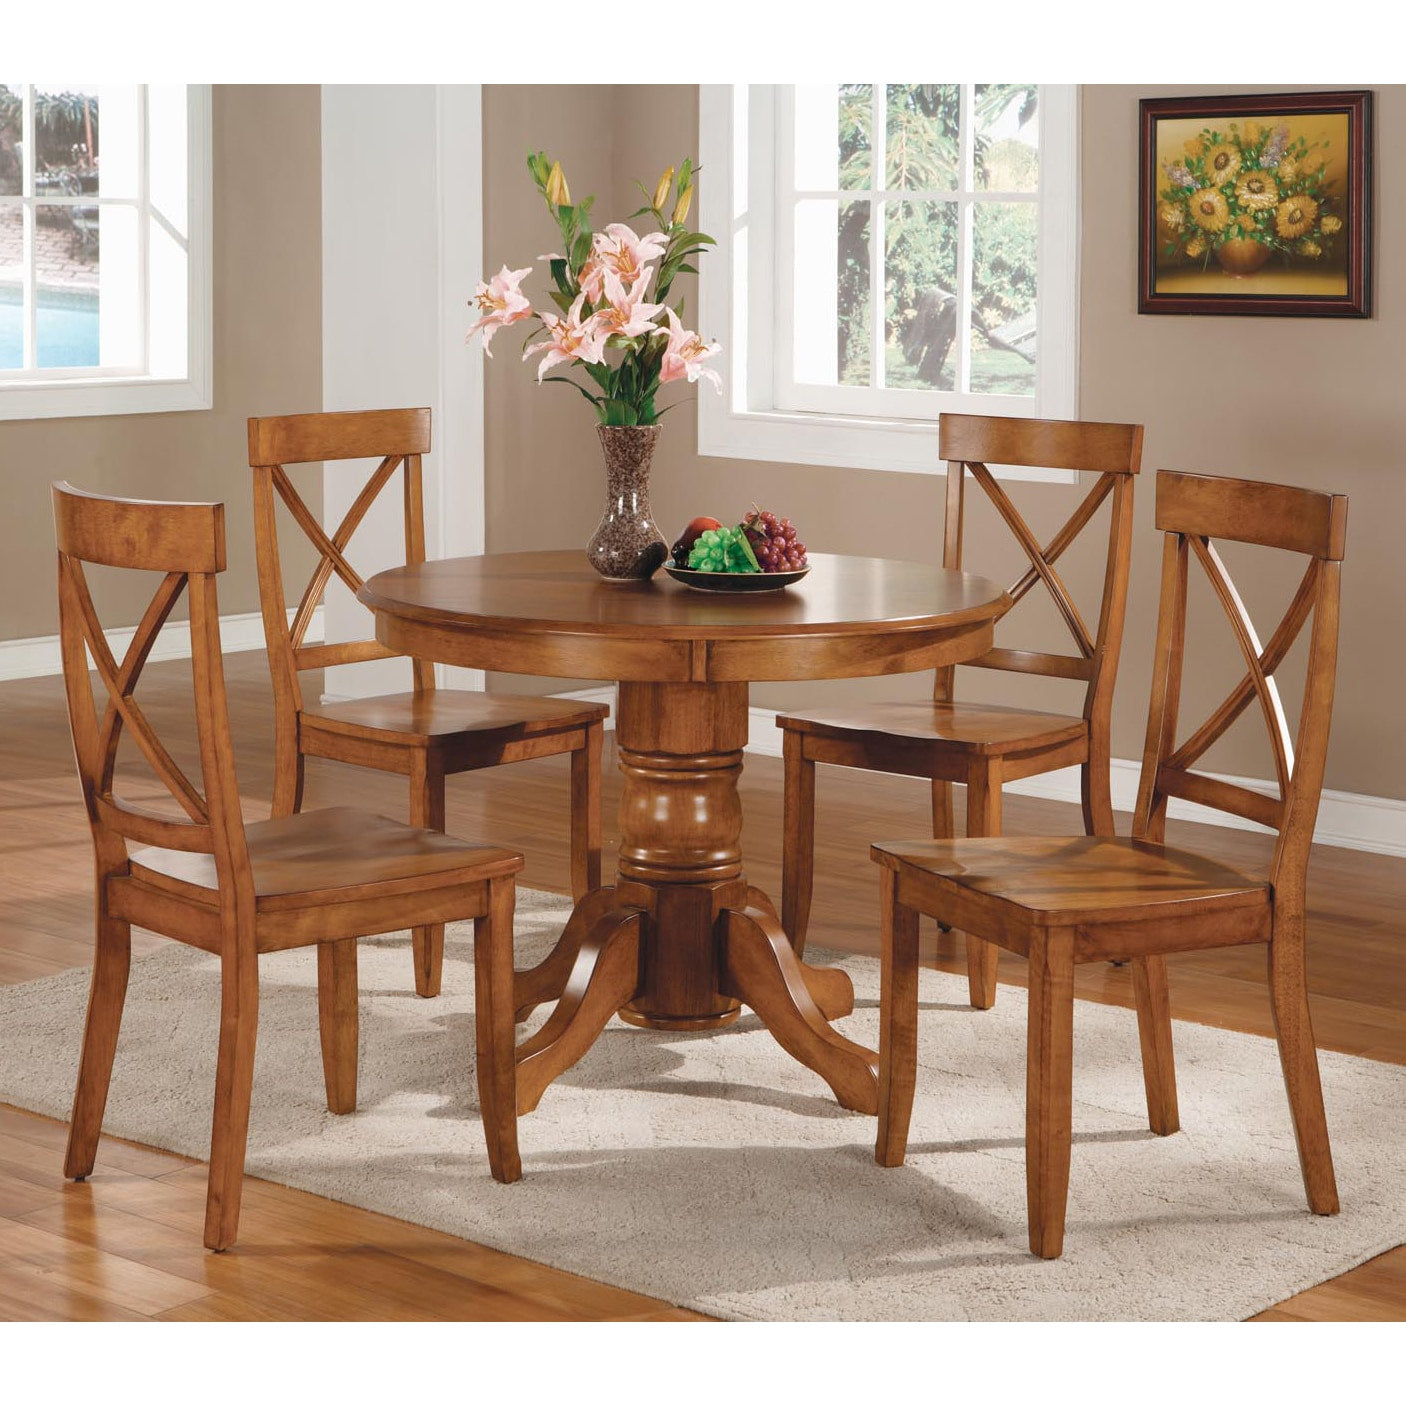 Cottage Oak Five-Piece Dining Furniture Set